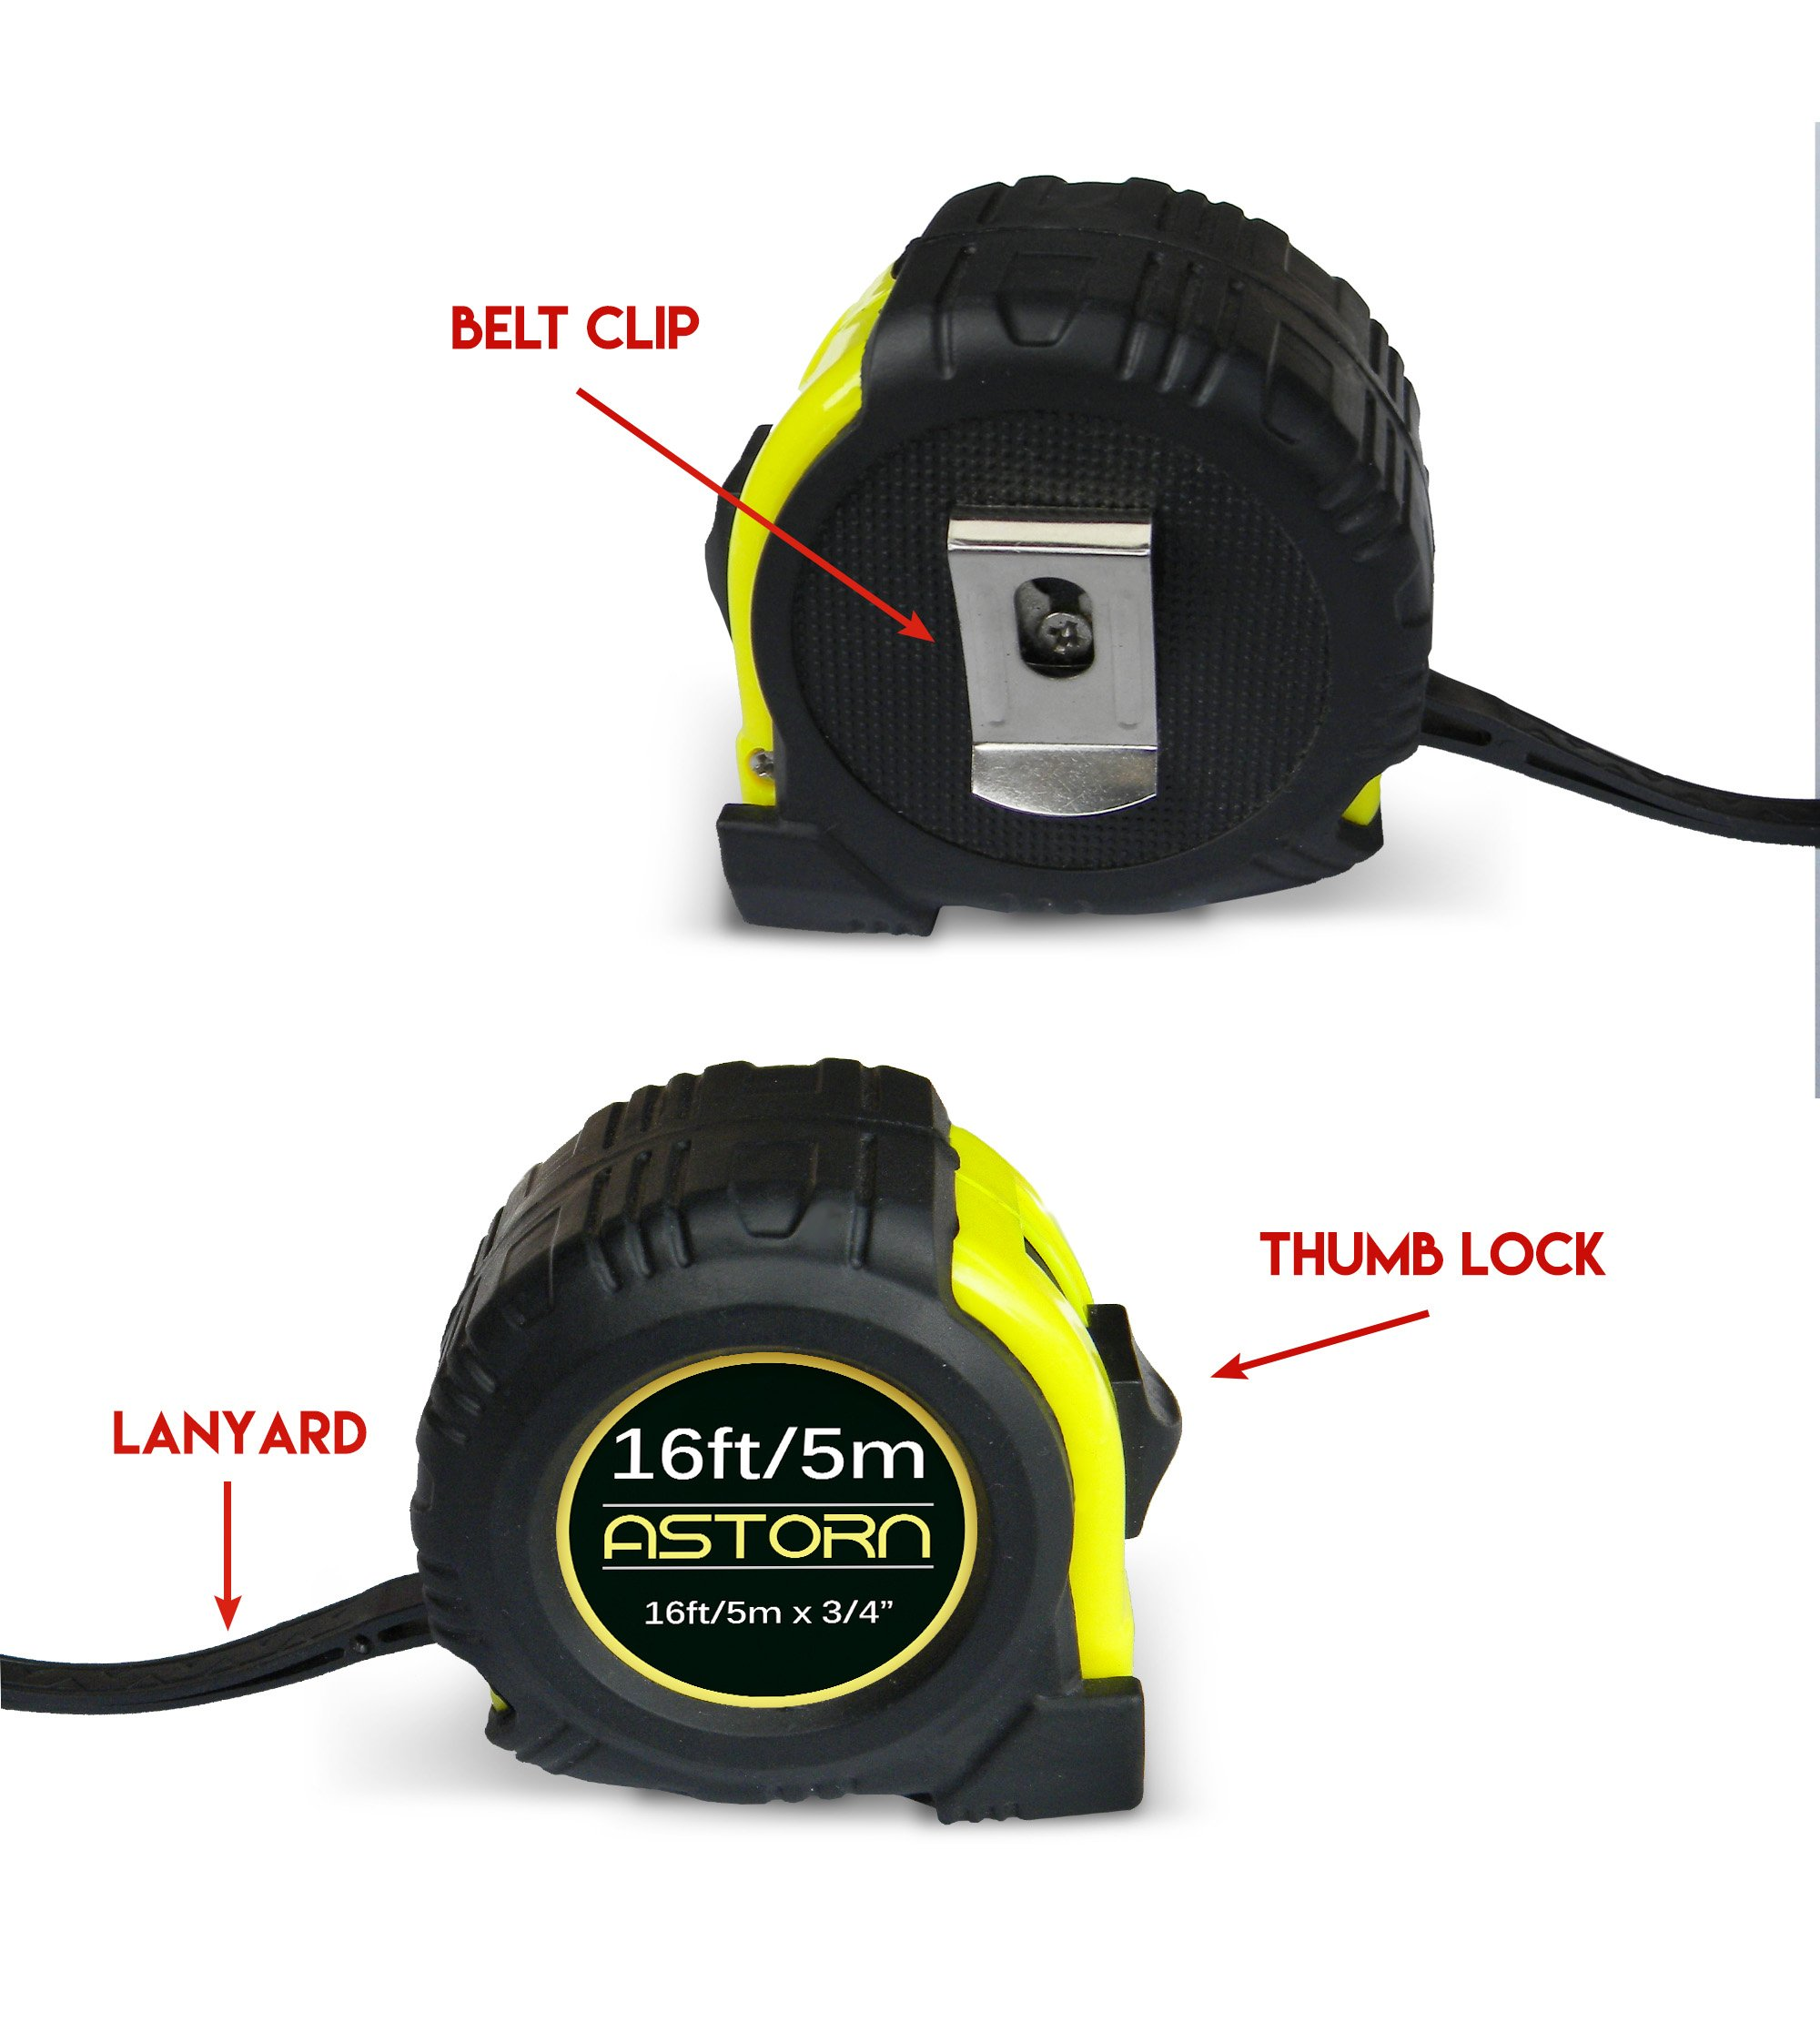 Measuring Tape For Contractors & DIY | Tape Measurer (Cinta Metrica) | Metric & Inches Measuring Tape for Construction | Heavy Duty Tape Measure with Smooth Sliding Nylon Coated Ruler by Astorn by Astorn (Image #3)